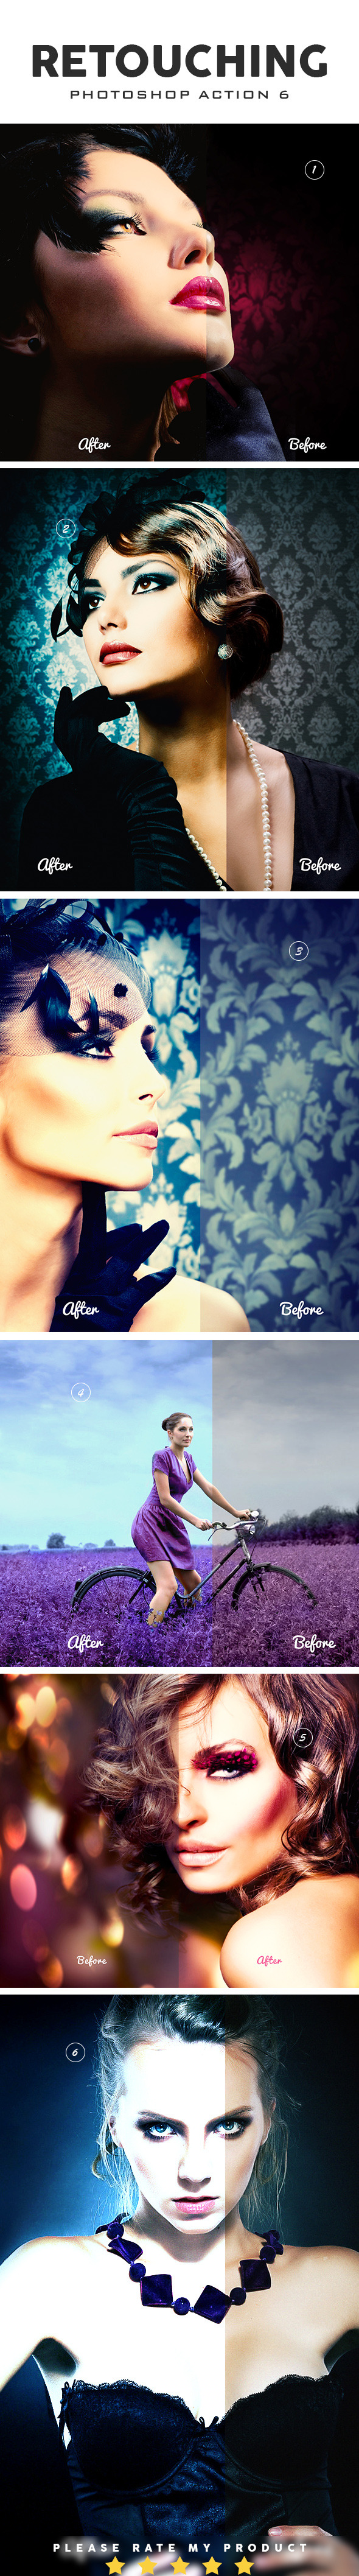 GraphicRiver Retouching Photoshop Action 6 10618881